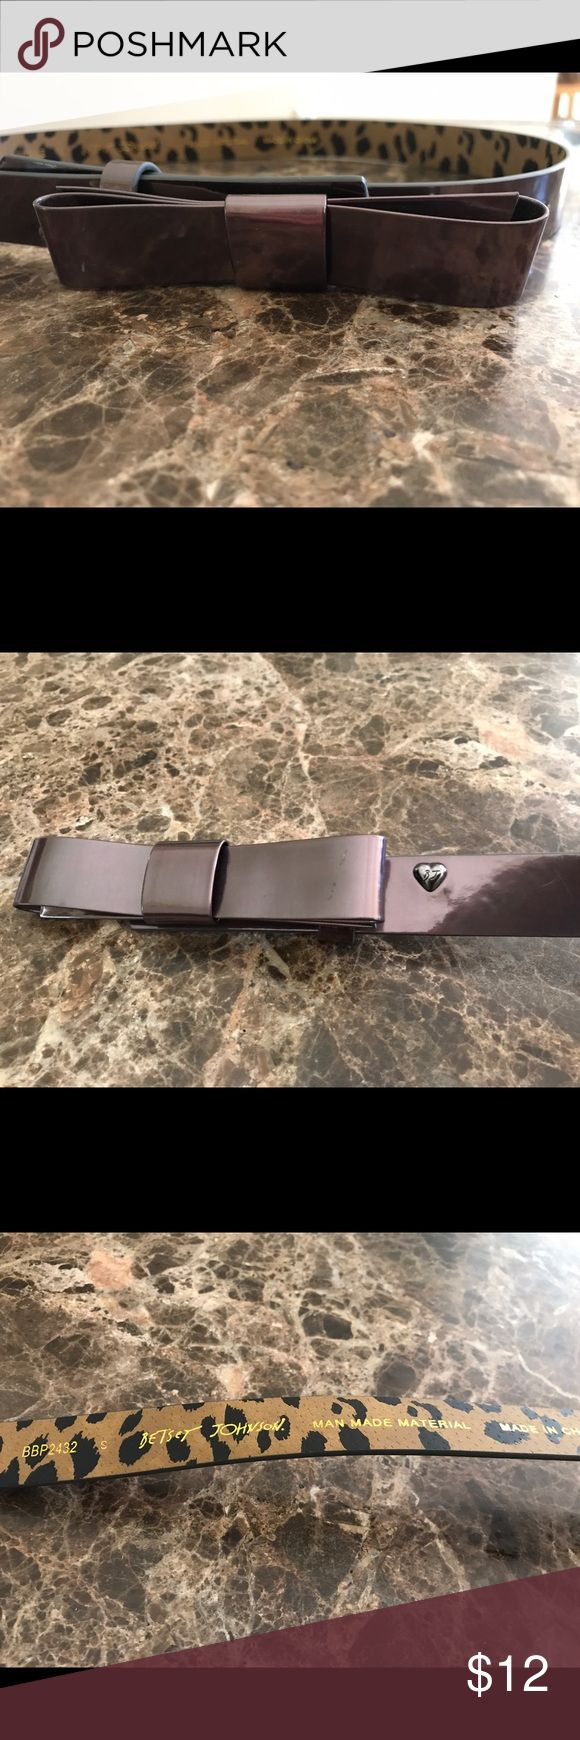 BETSEY JOHNSON METALLIC BROWN BOW BELT BETSEY JOHNSON METALLIC BROWN BOW BELT. MARKED AS SMALL. MEASURES APPROX 38 in long n 1 in wide. THIS IS A GREAT BELT Betsey Johnson Accessories Belts